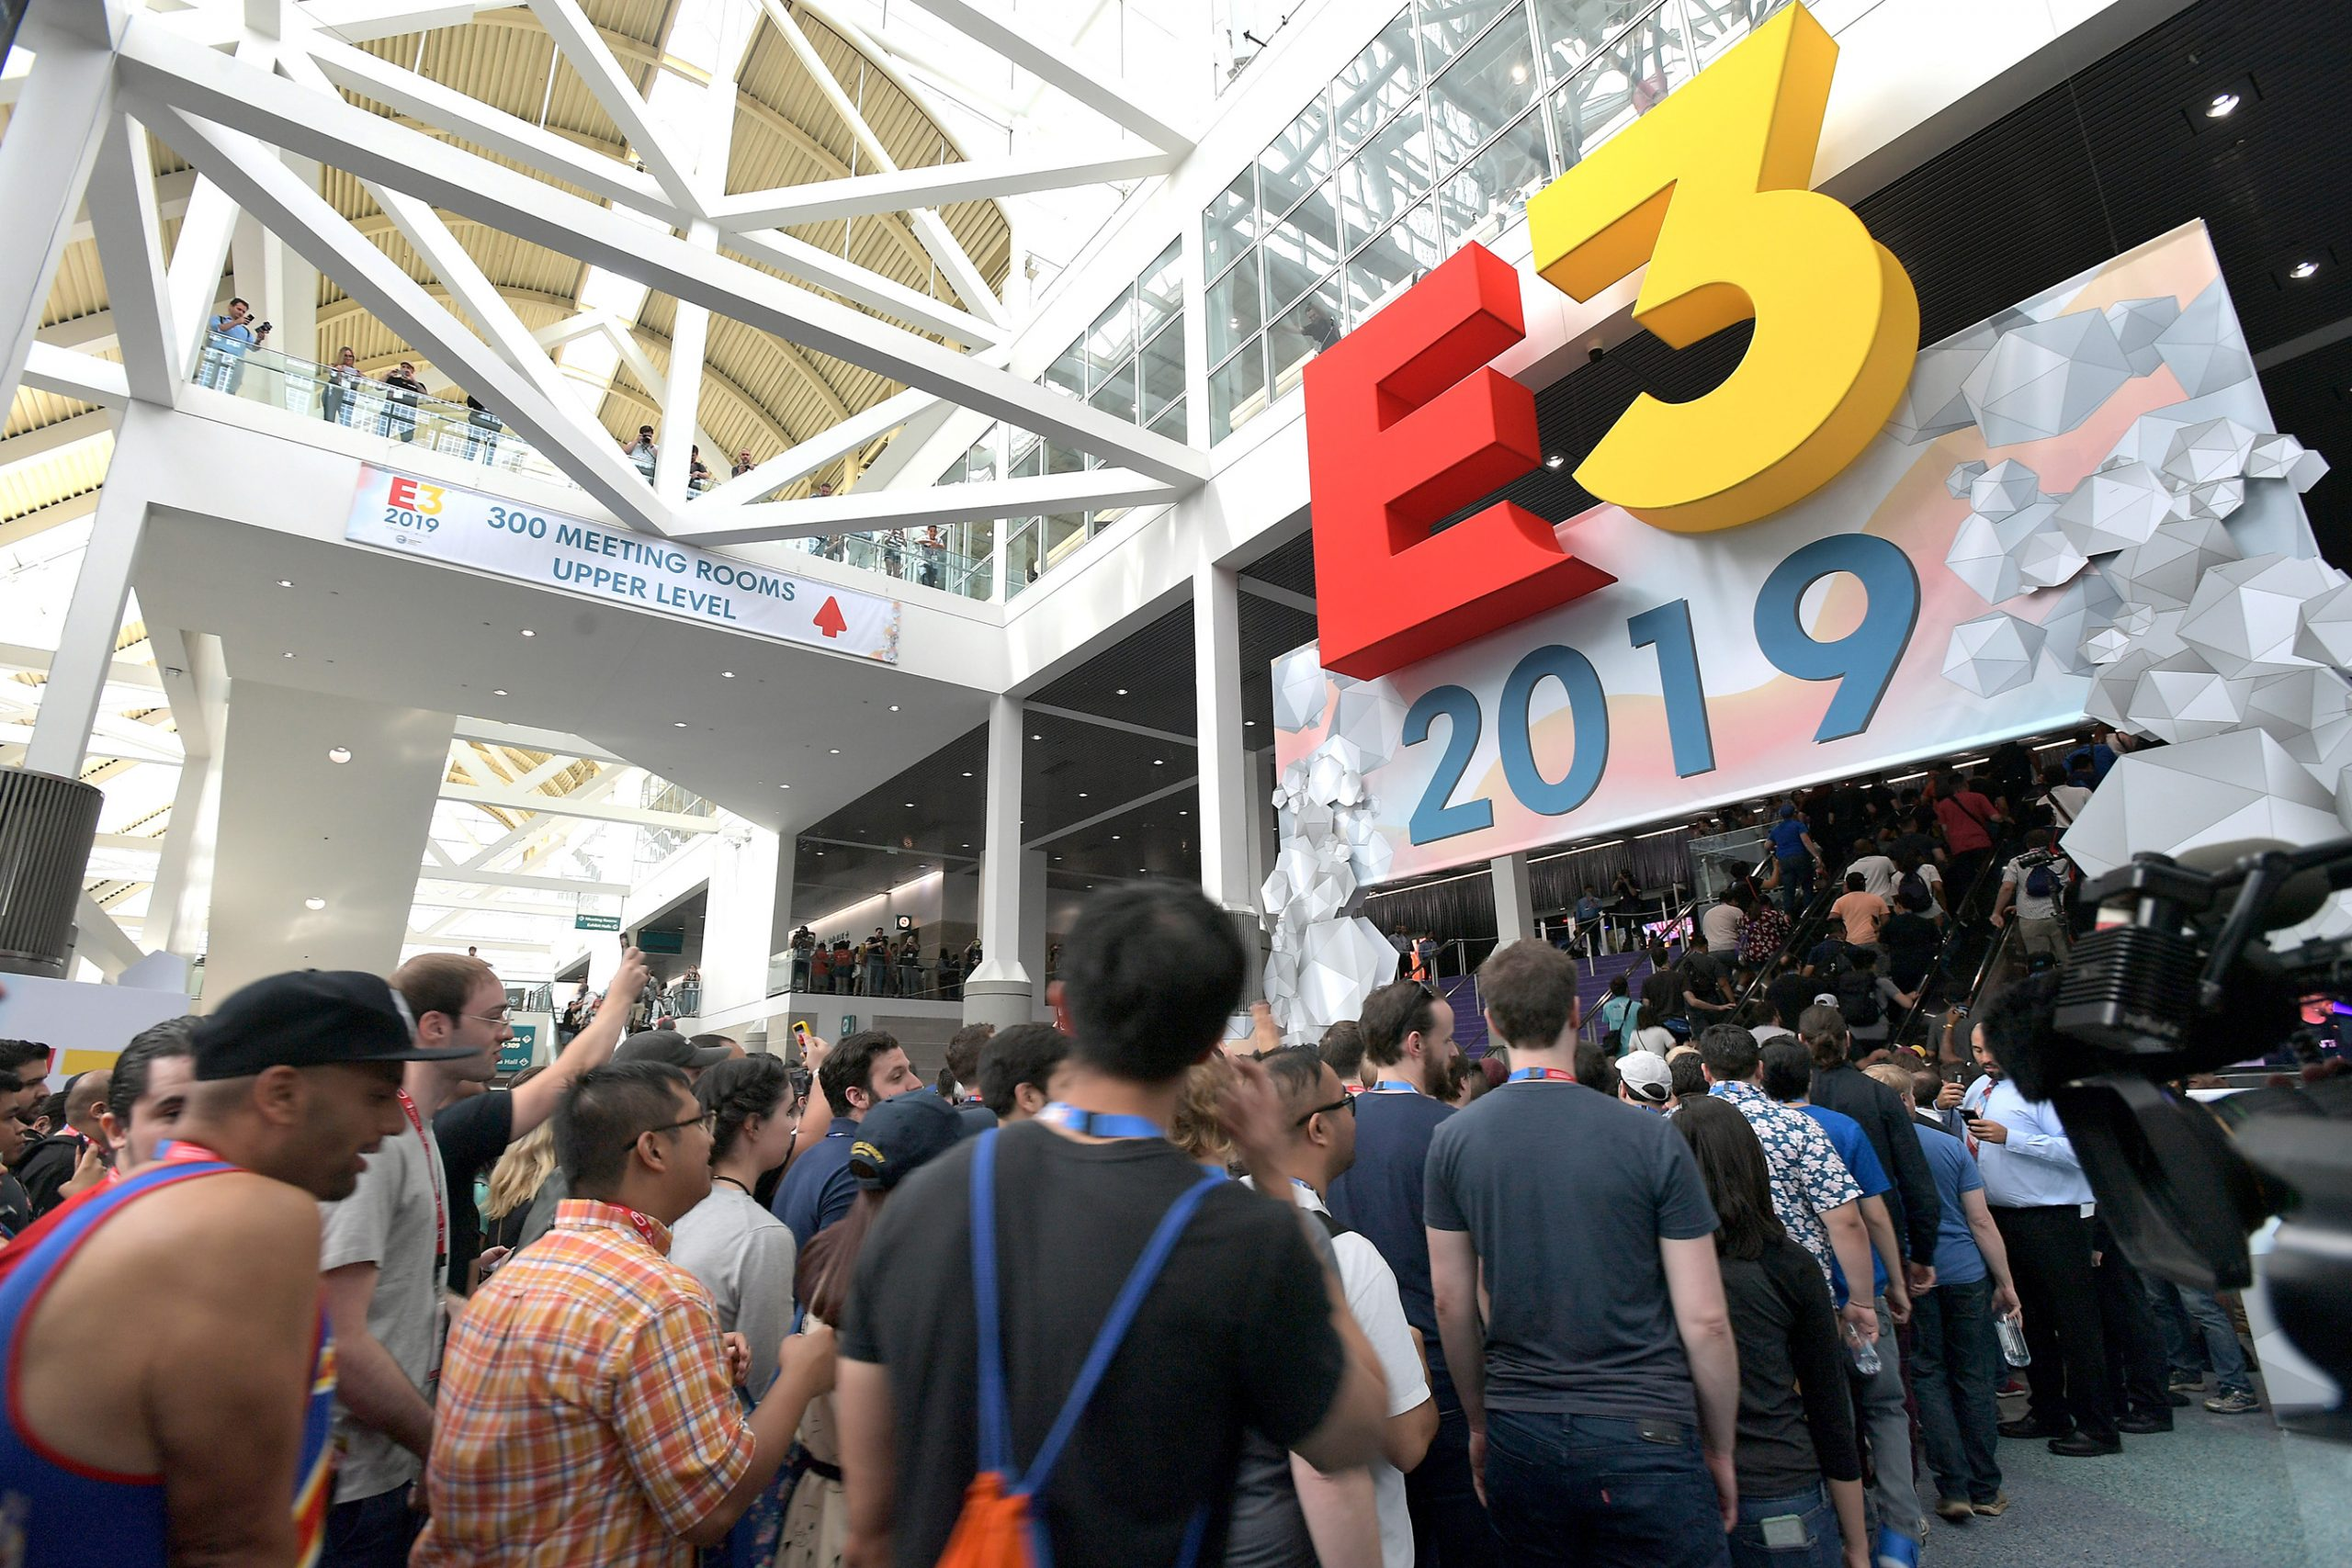 E3 - The World's Premier Event for Video Games  South Hall - Day 1